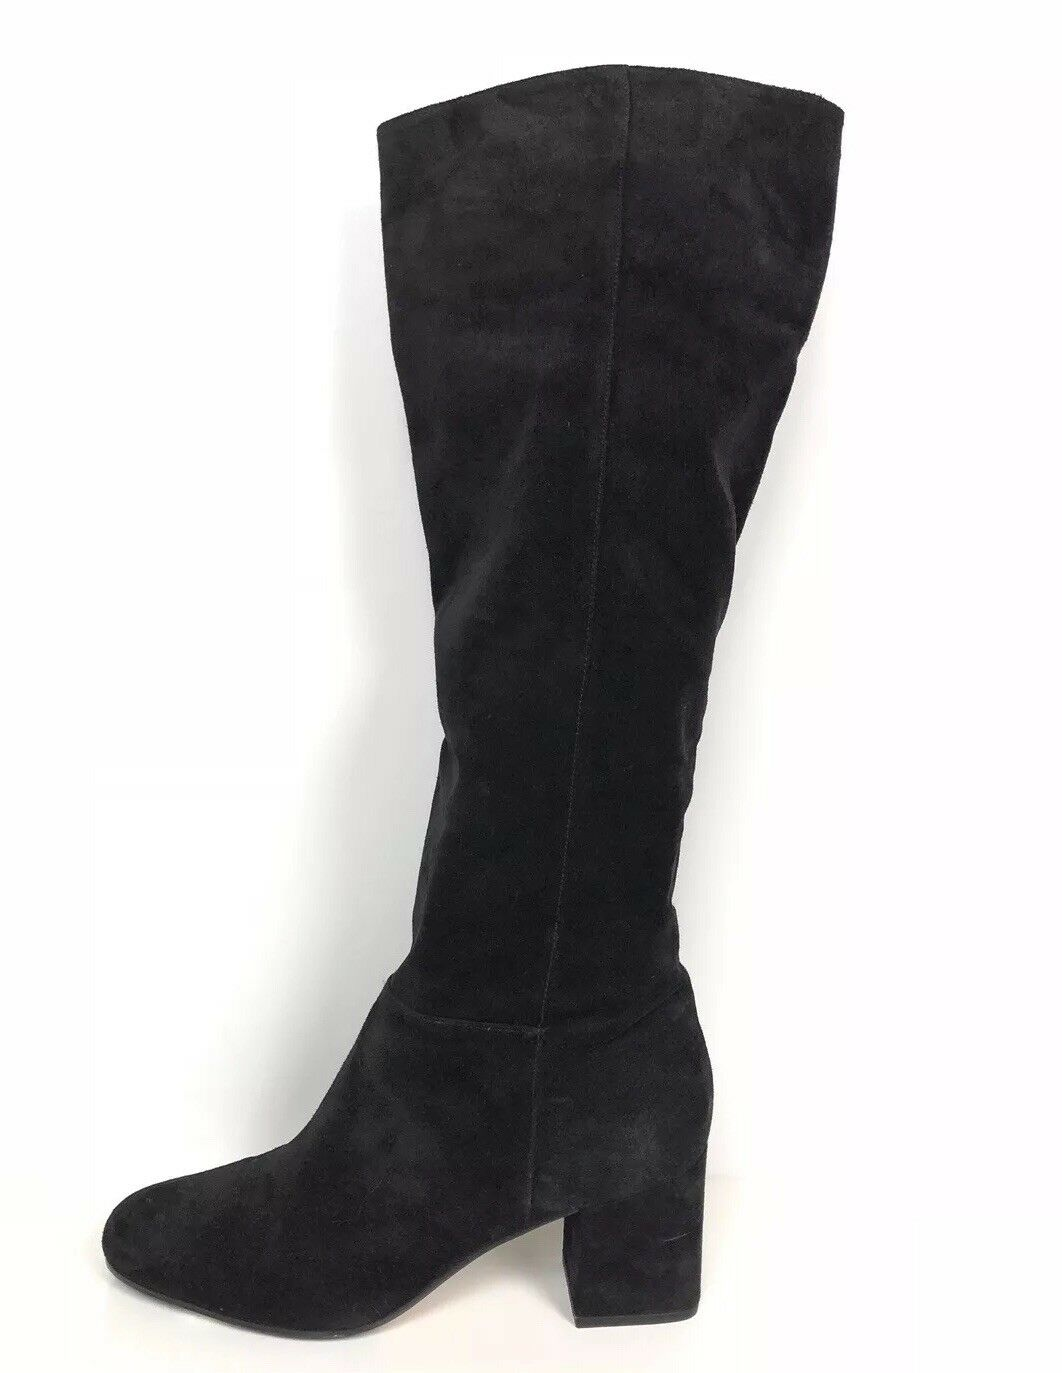 Via Spiga donna's Mellie Knee High High High stivali nero Suede Dimensione 9M 42b620